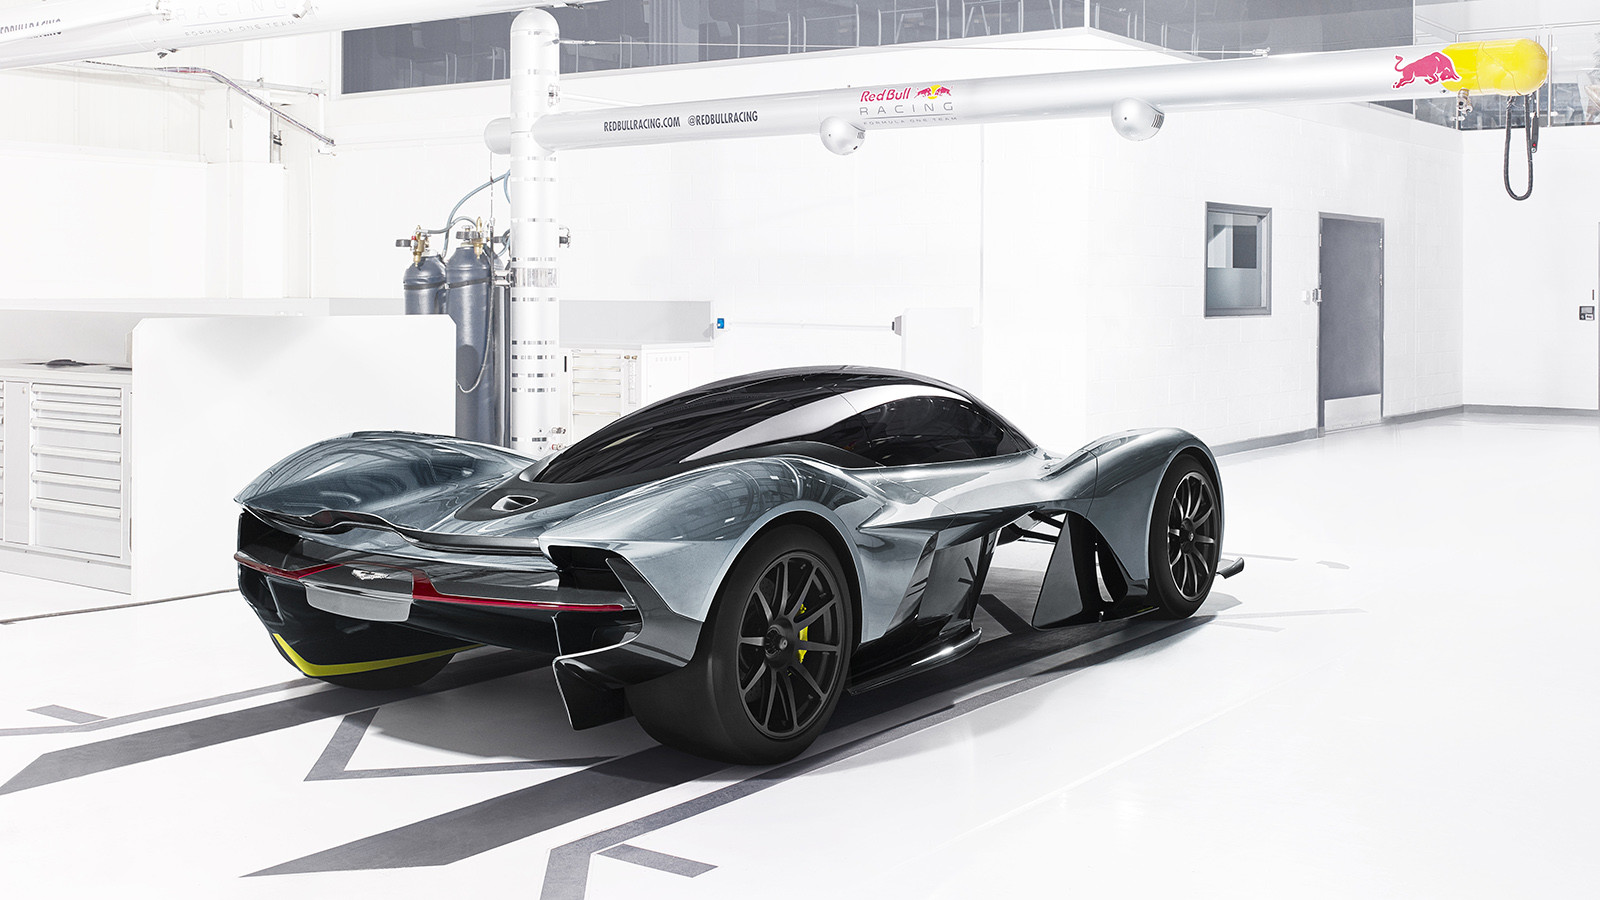 Aston Martin AM-RB 001 photo 174408